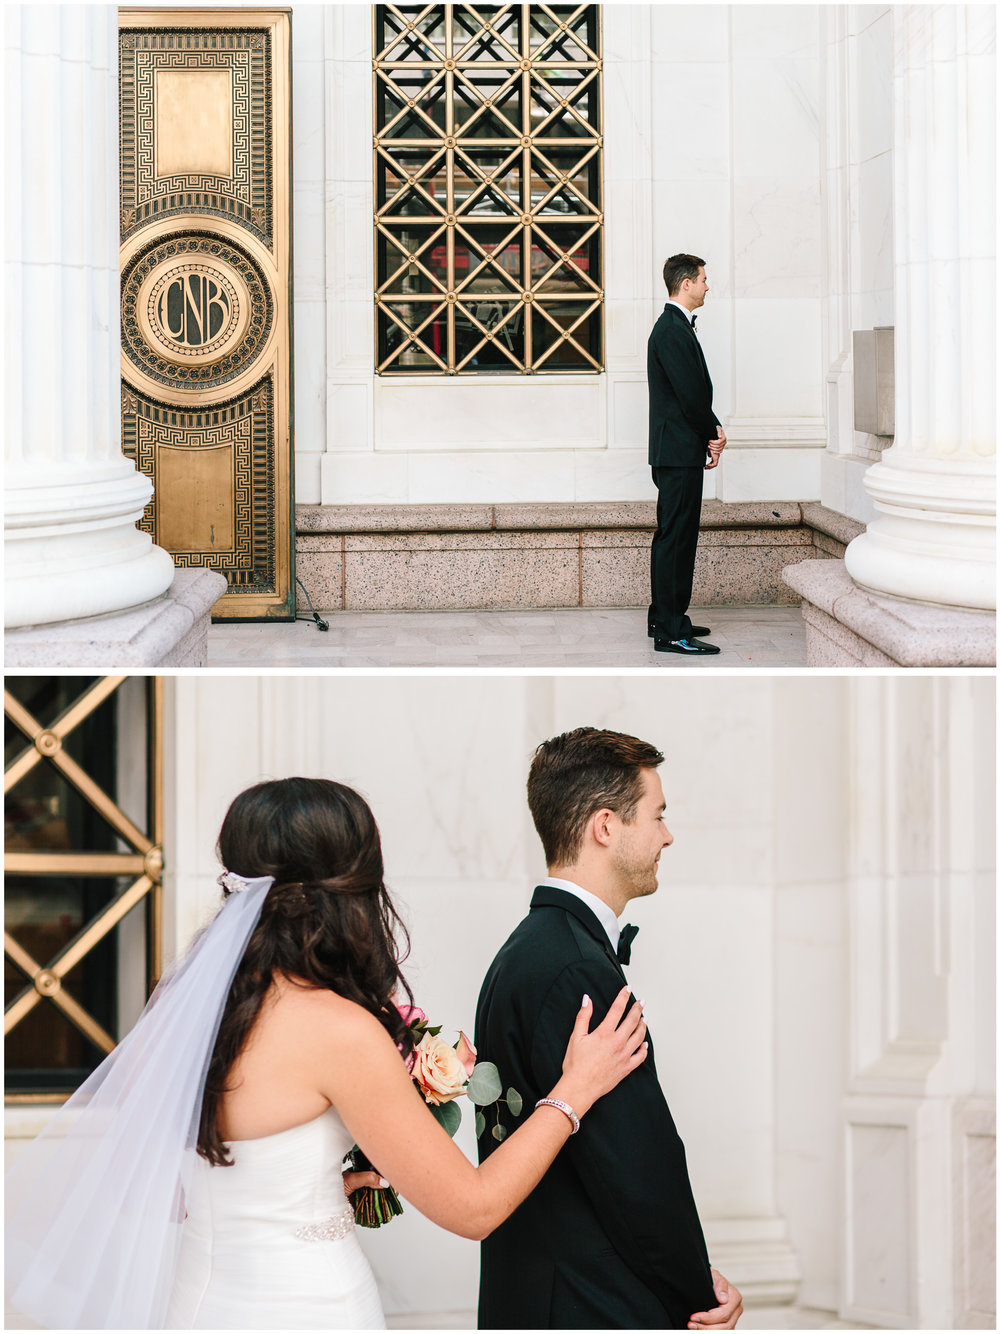 downtown_denver_wedding_26.jpg